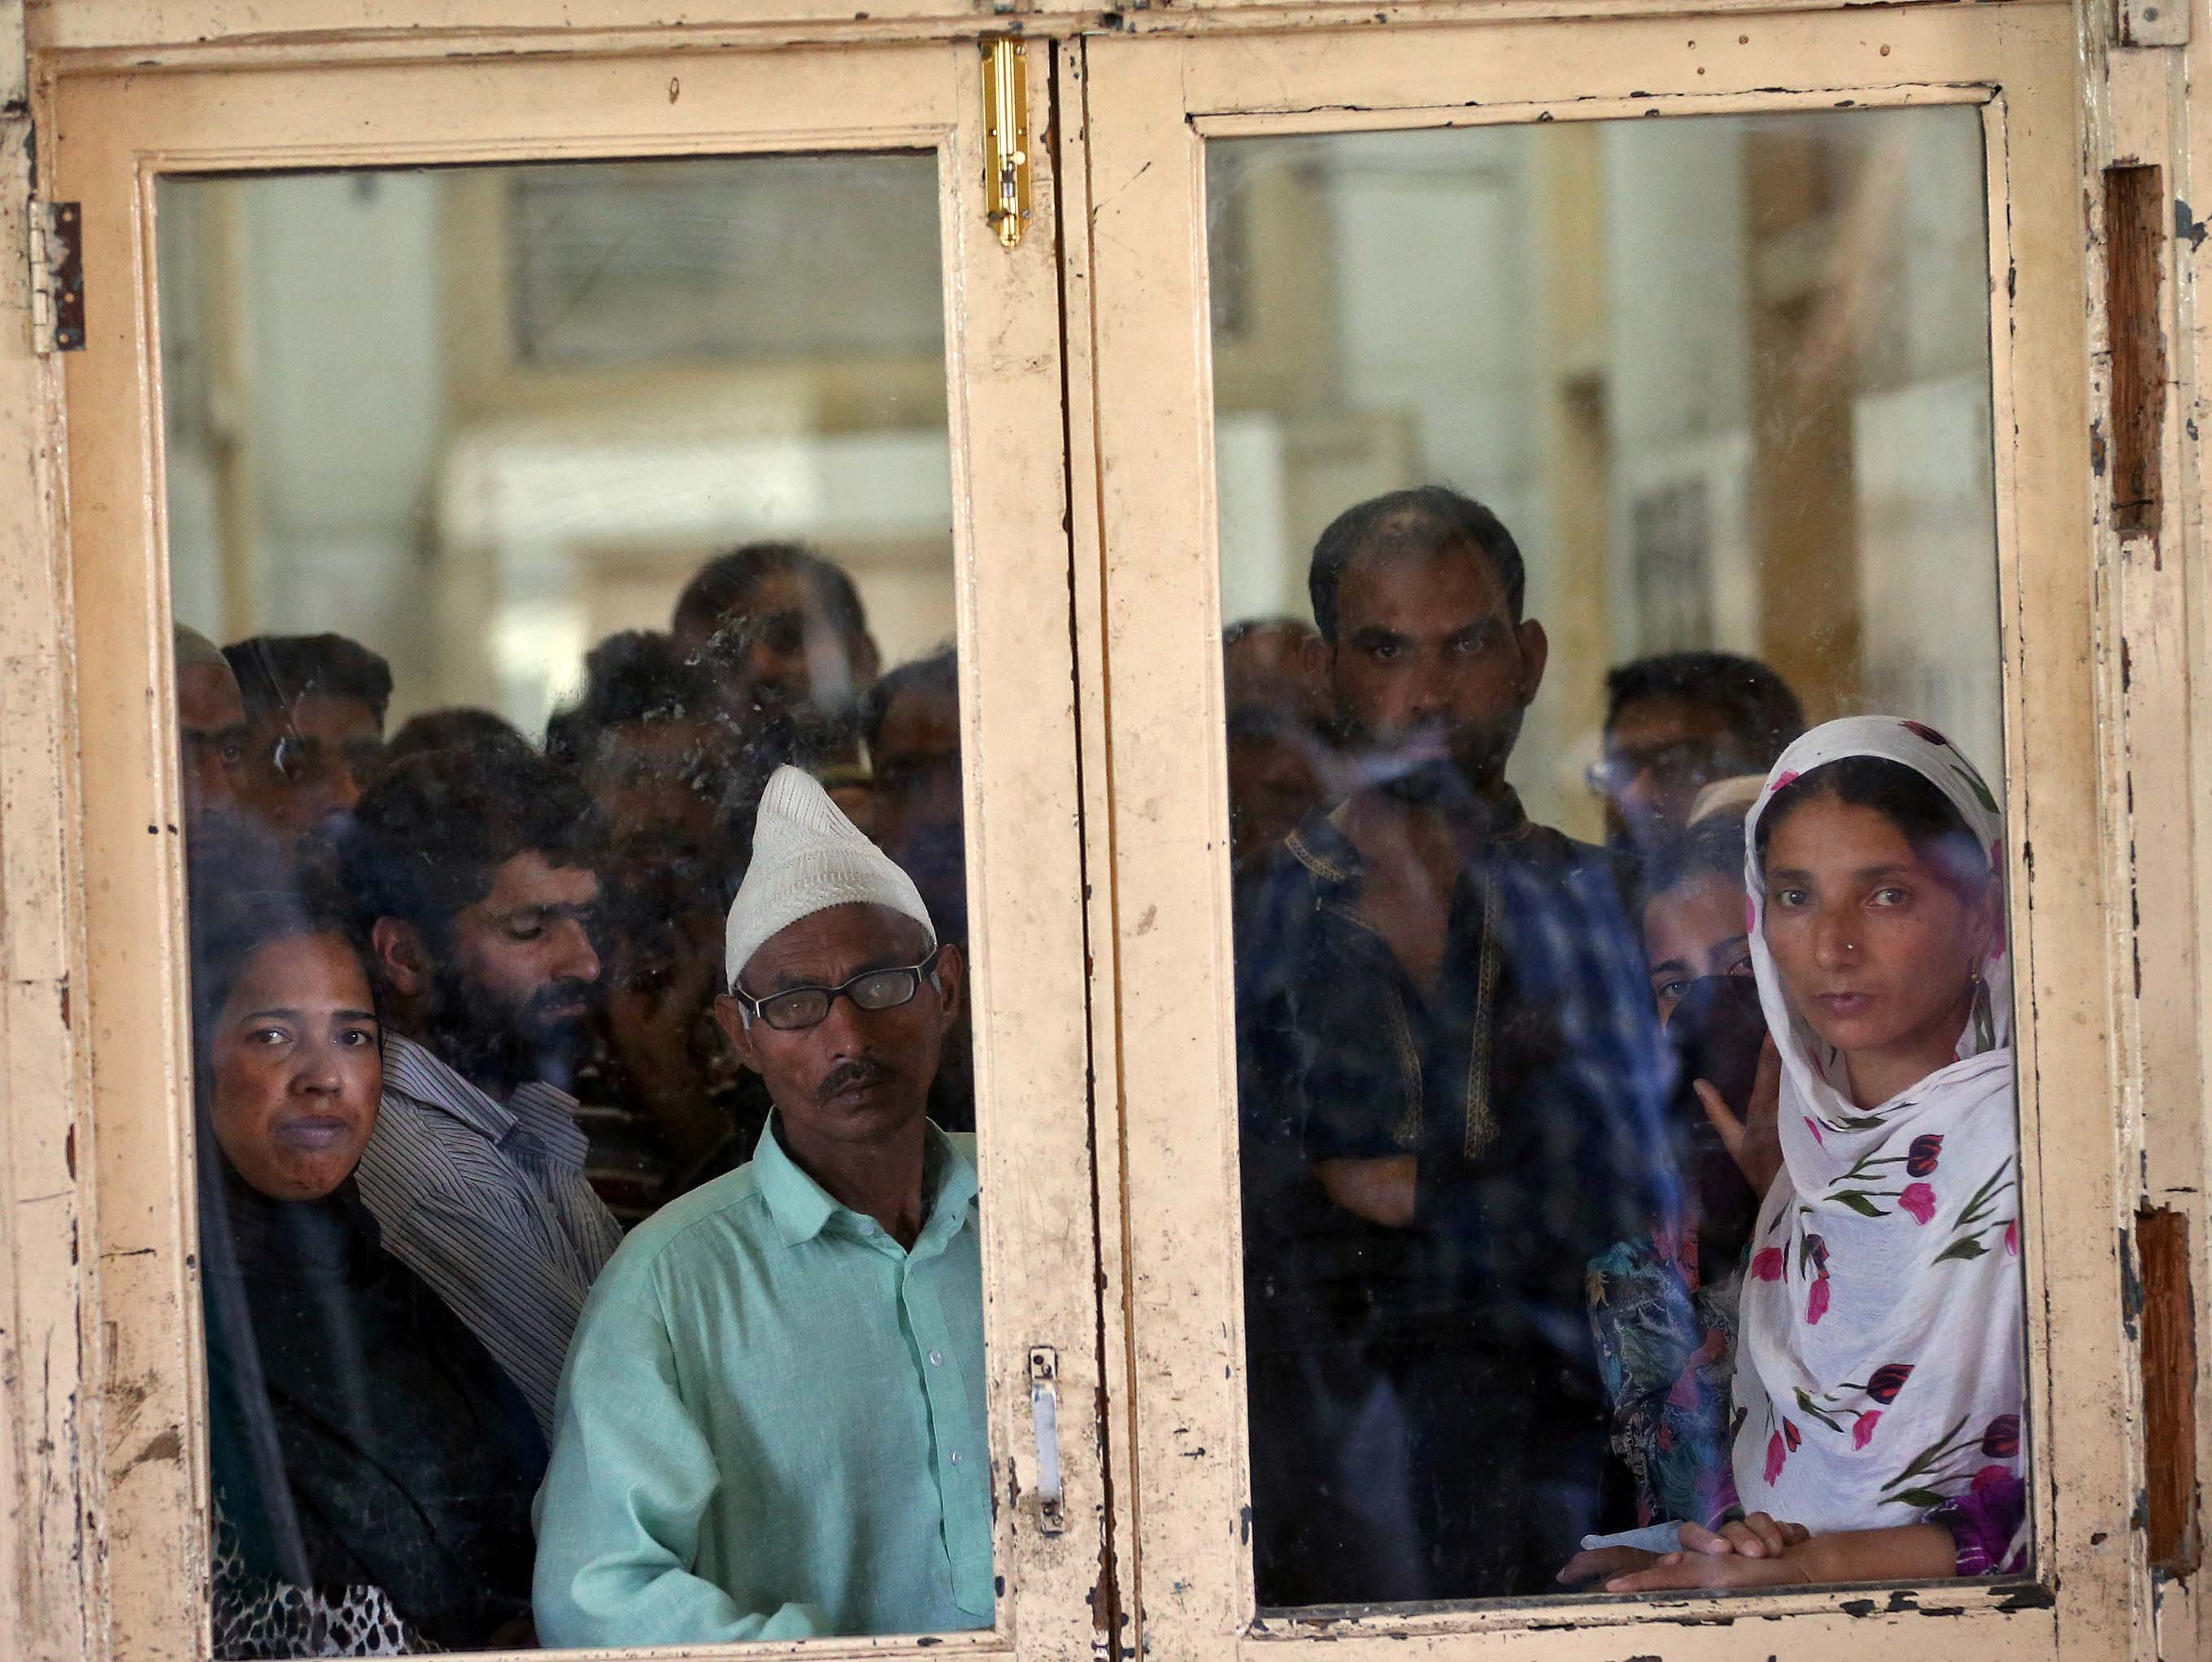 People wait for news at a hospital in Srinagar about family members whom they say were beaten by security forces near Srinagar following weeks of violence in Kashmir, on Thursday, August 18, 2016. Photo: Reuters